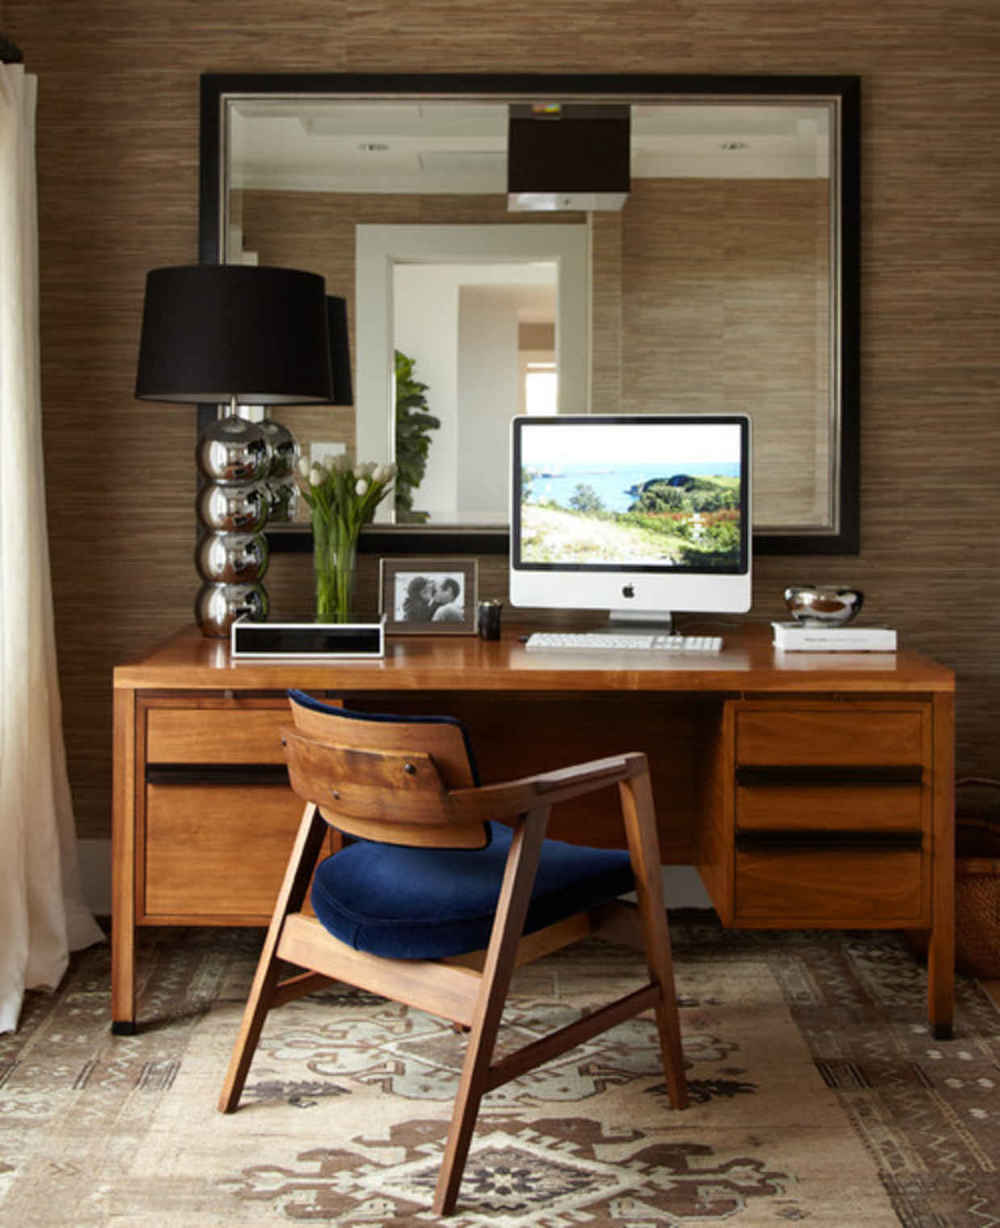 I love this stylish home office.  With that said, I would advise against that table lamp that looks like it was borrowed from a Marriott.